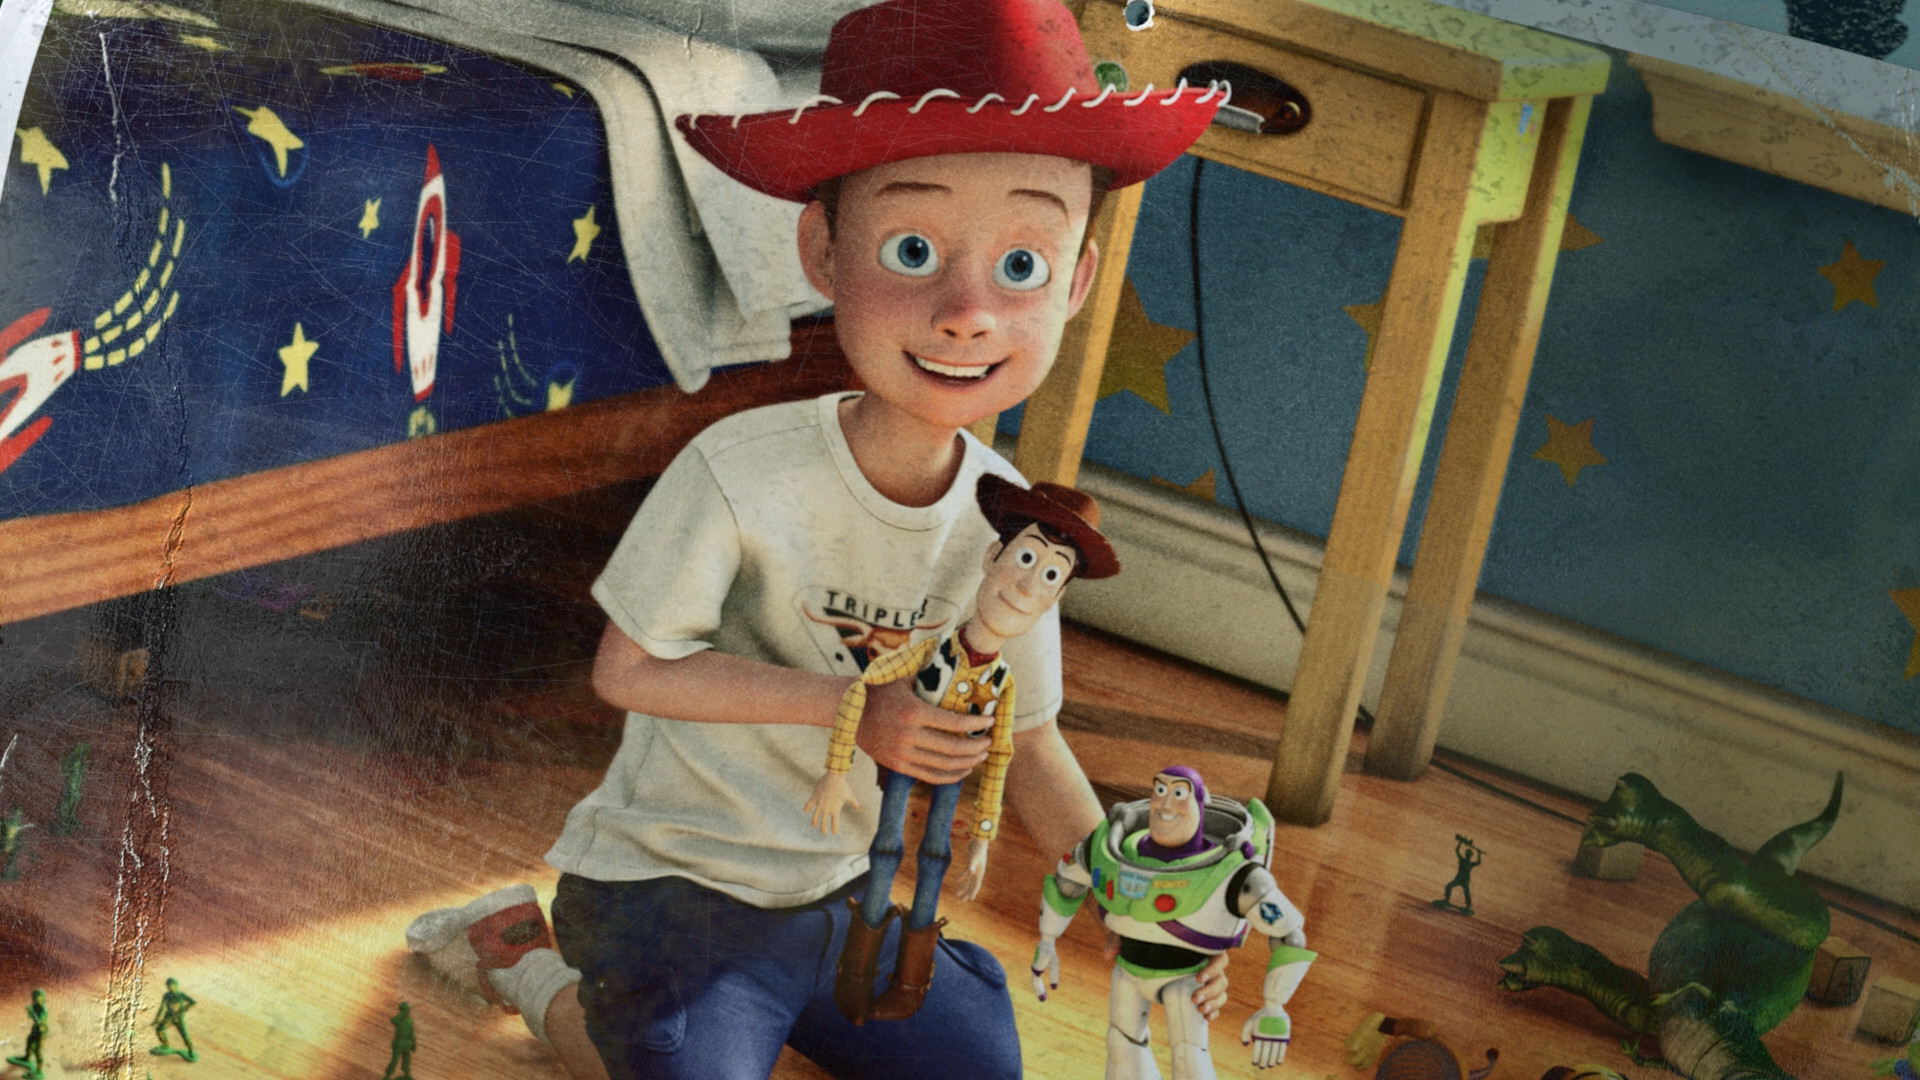 1920x1080 - Andys Wallpaper Toy Story 37